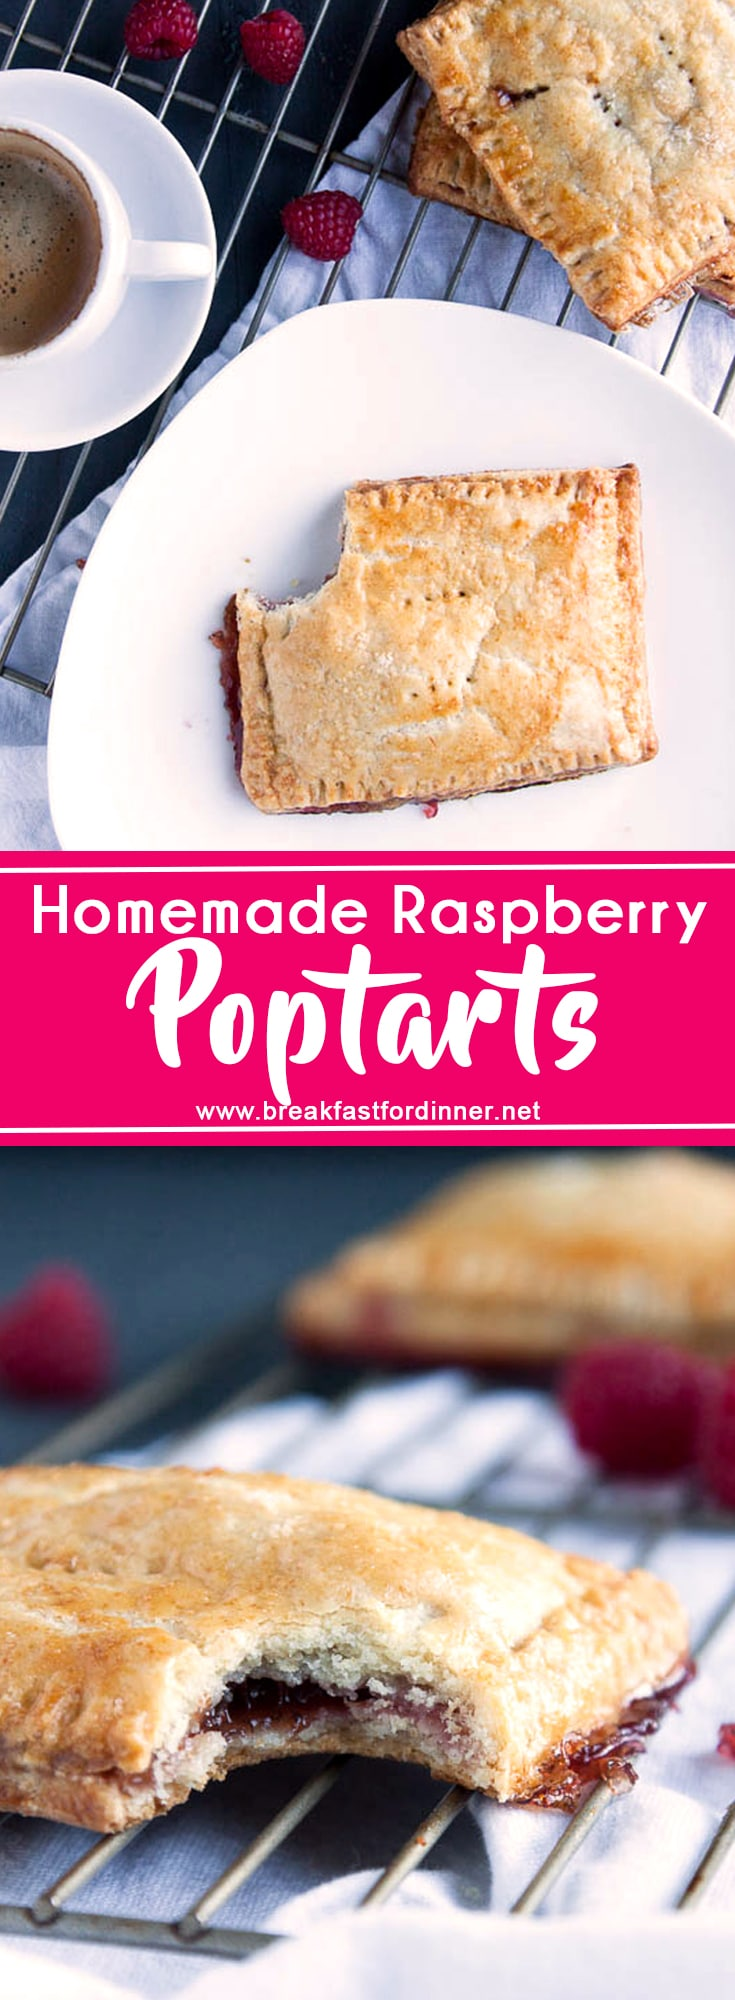 If you love pop tarts, then you will love these Homemade Raspberry Pop Tarts! All the flavor without the fake ingredients!